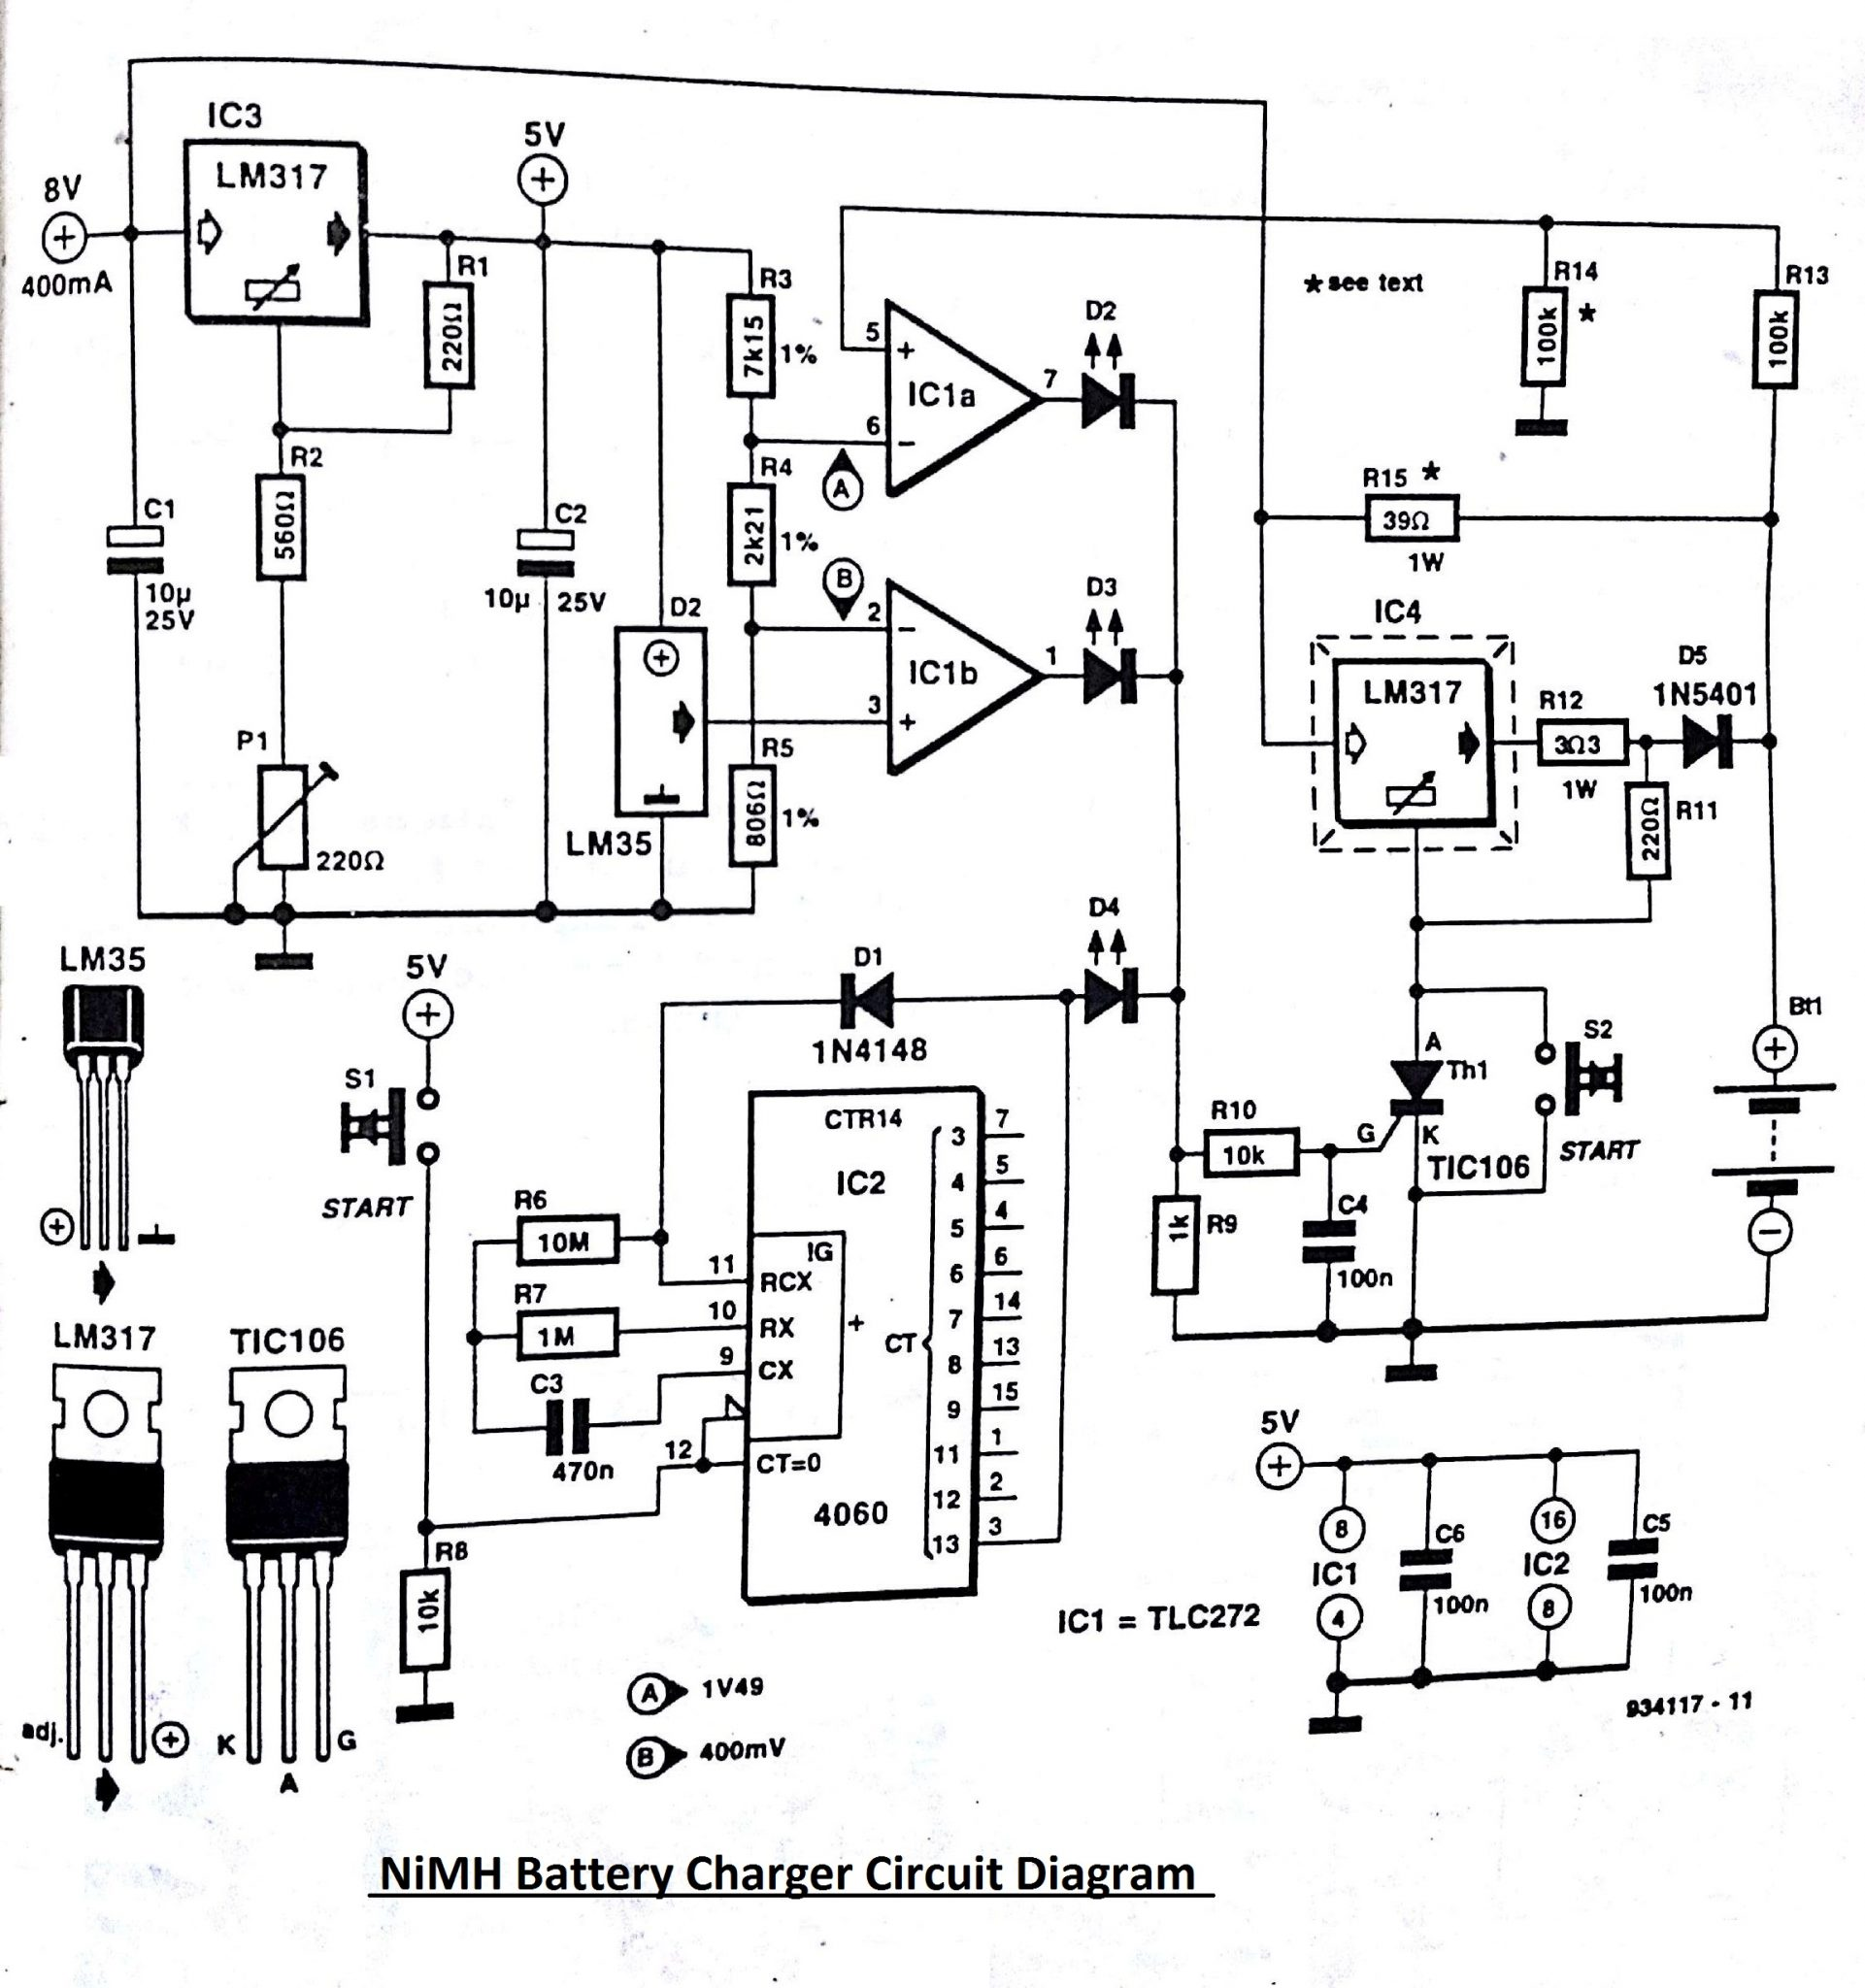 Nimh Charger Schematic